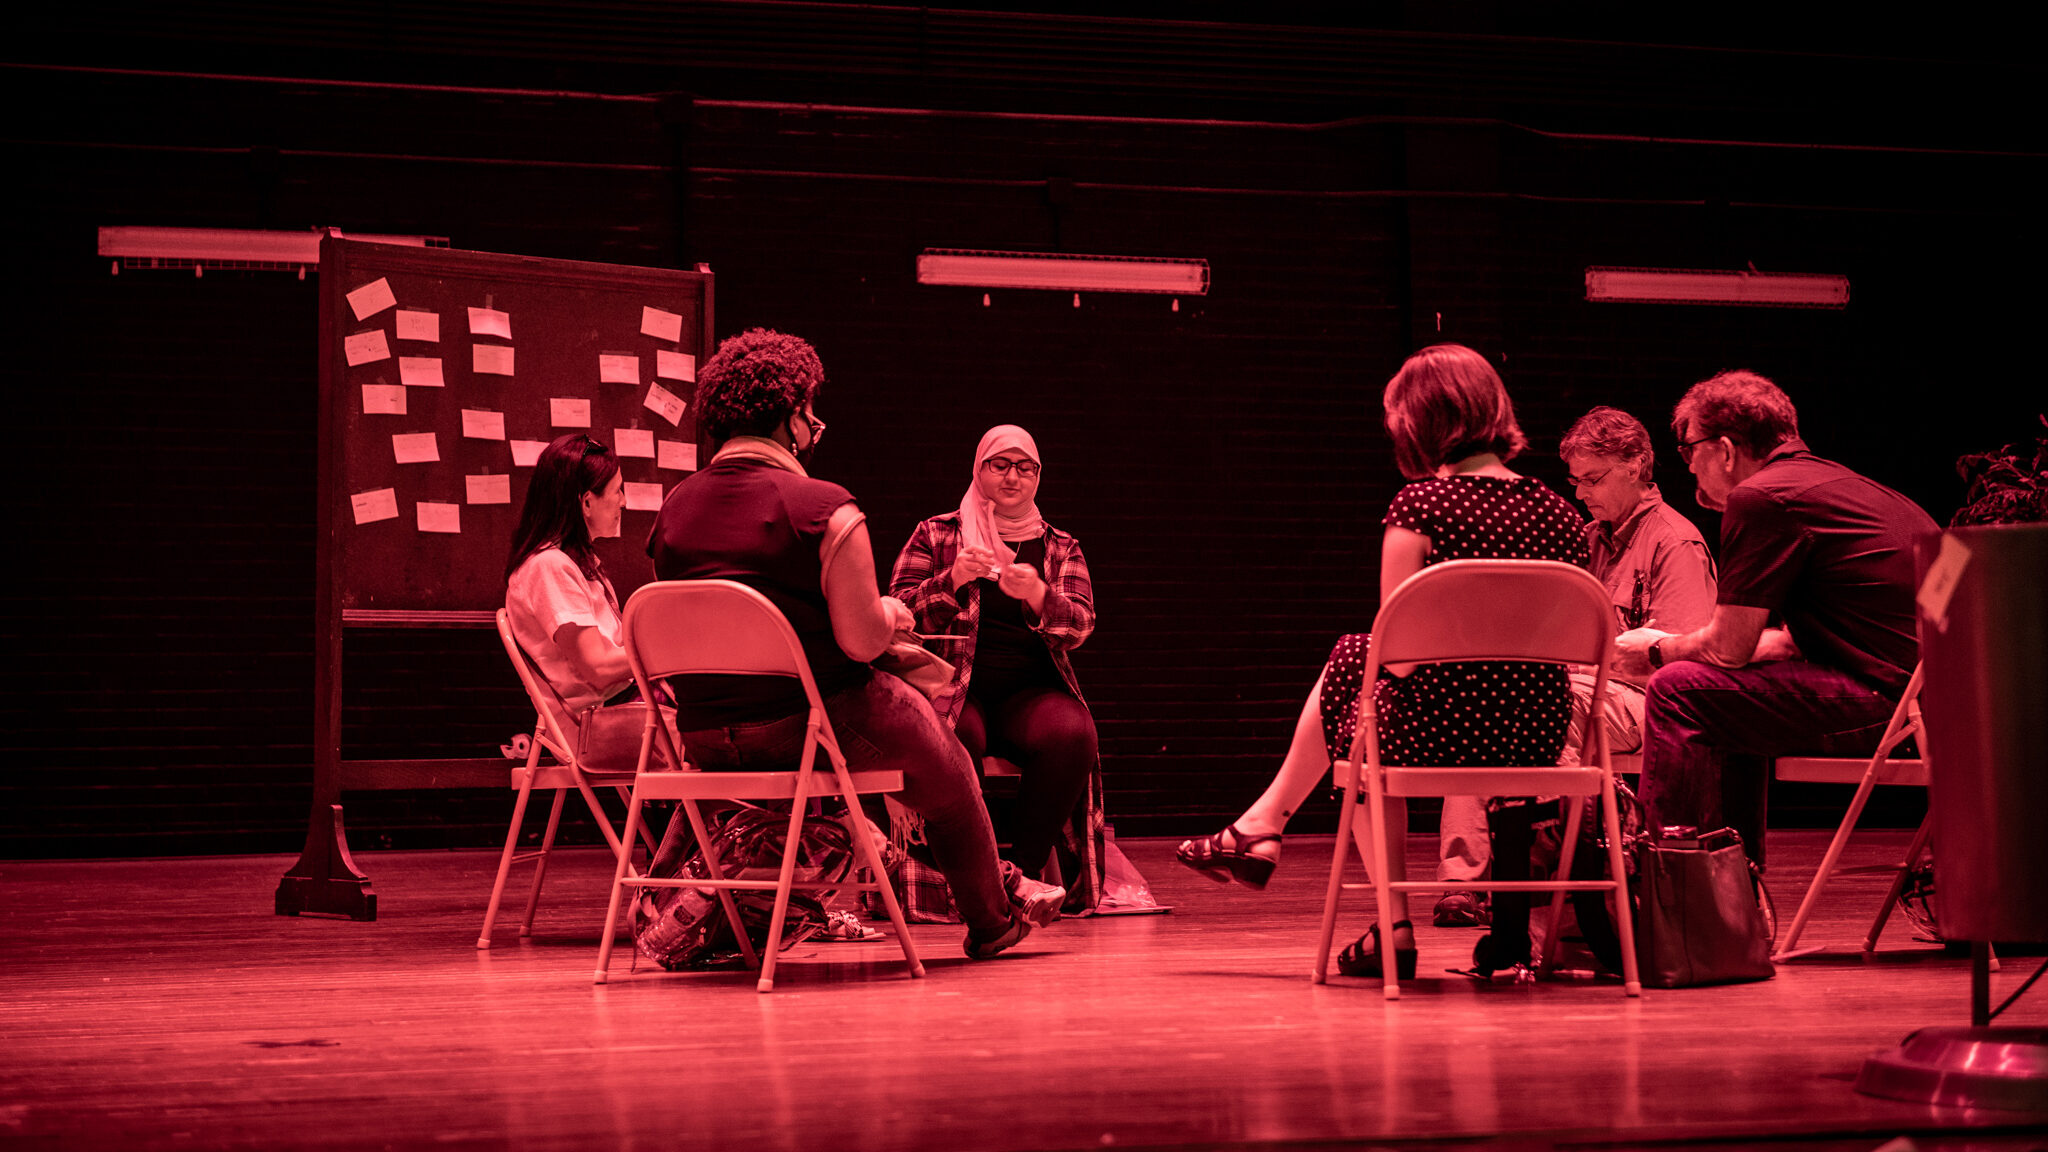 At the end of the exhibit, Meryem Tunagur leads participants in a debrief exercise.